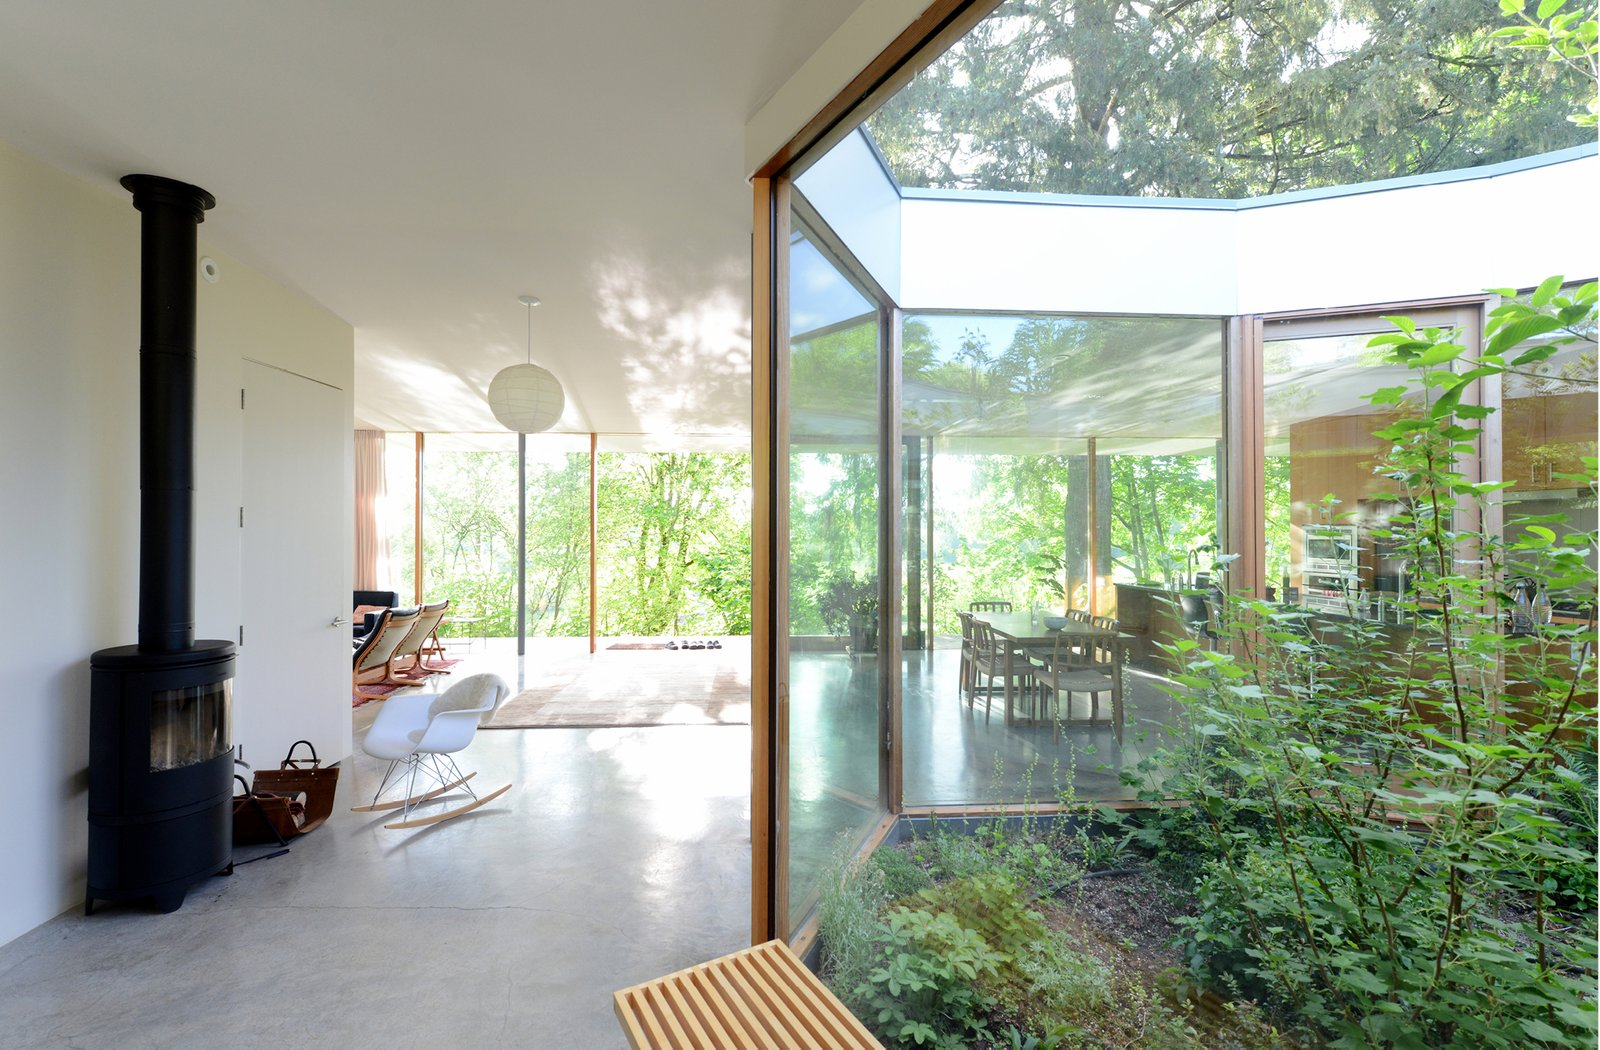 In the wintertime, the courtyard's position increases the passive heating of the sun, while in the summertime, shaded by native deciduous trees, the courtyard stimulates natural ventilation and passive cooling.  The Courtyard House